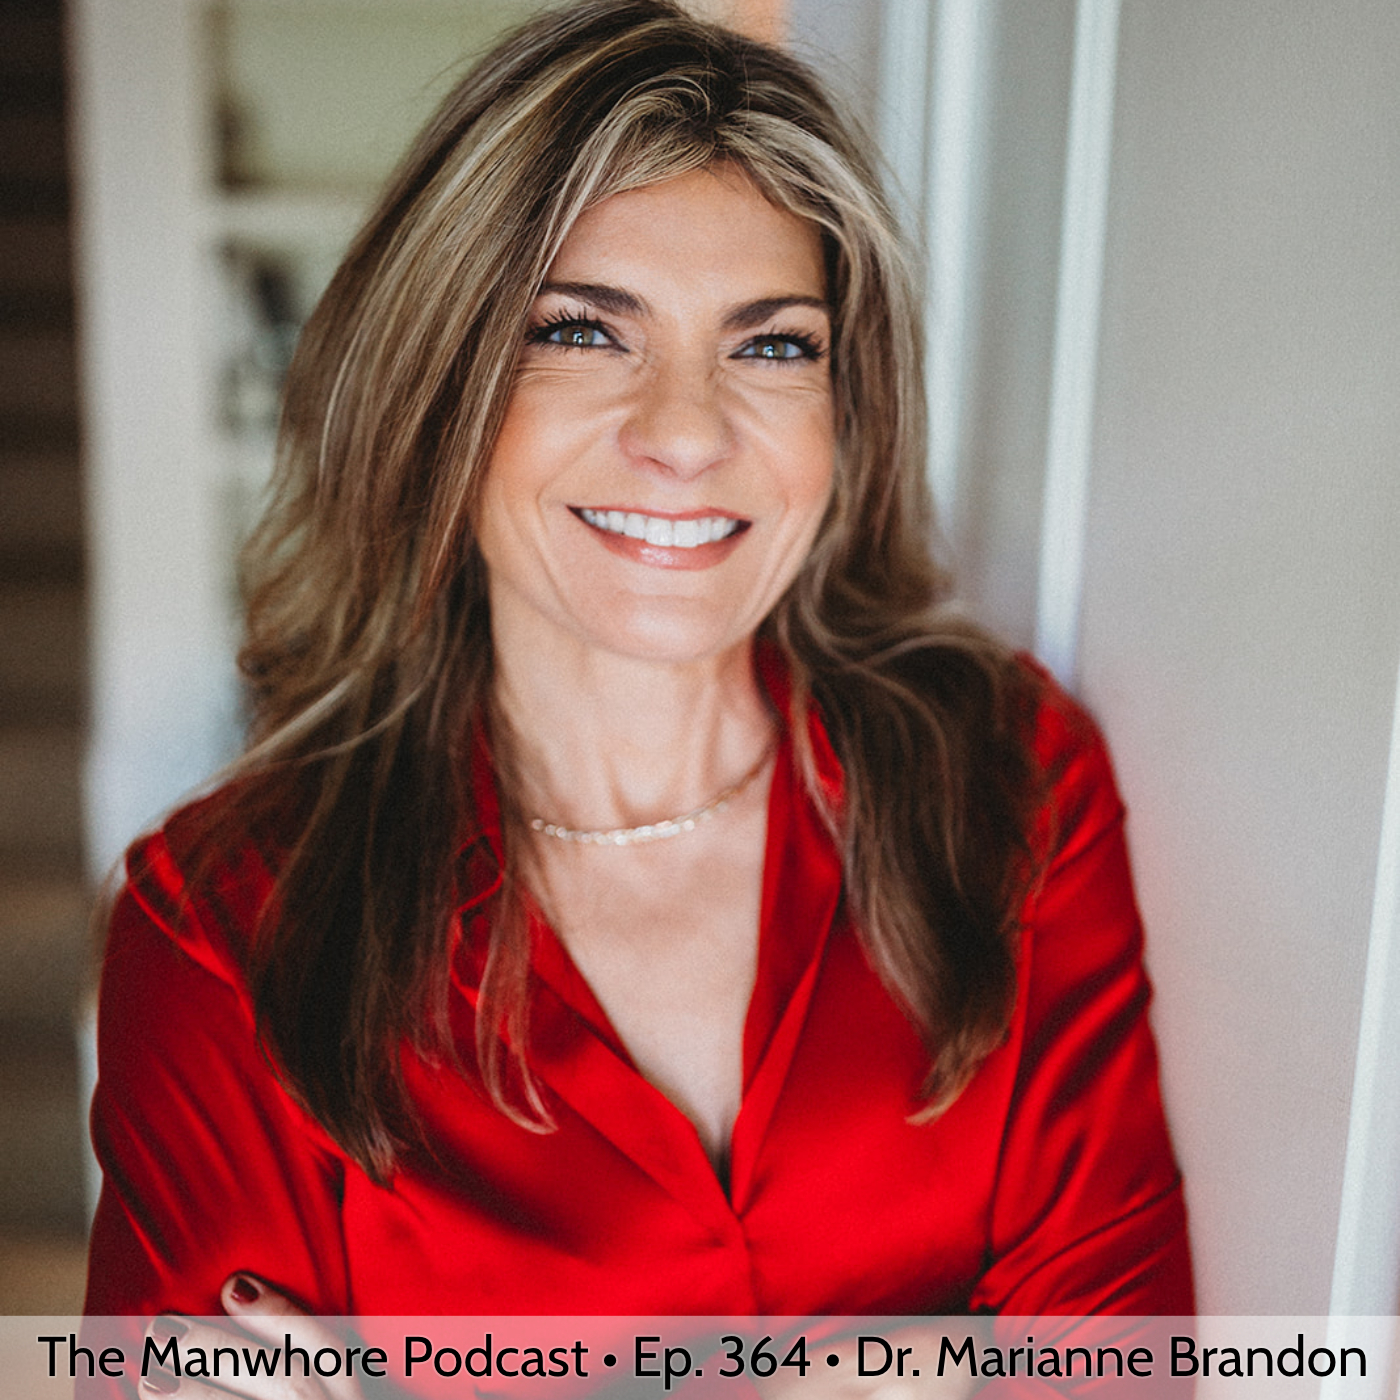 The Manwhore Podcast: A Sex-Positive Quest - Ep. 364: Sex Robots, Couples Therapy, and Intimacy with Dr. Marianne Brandon